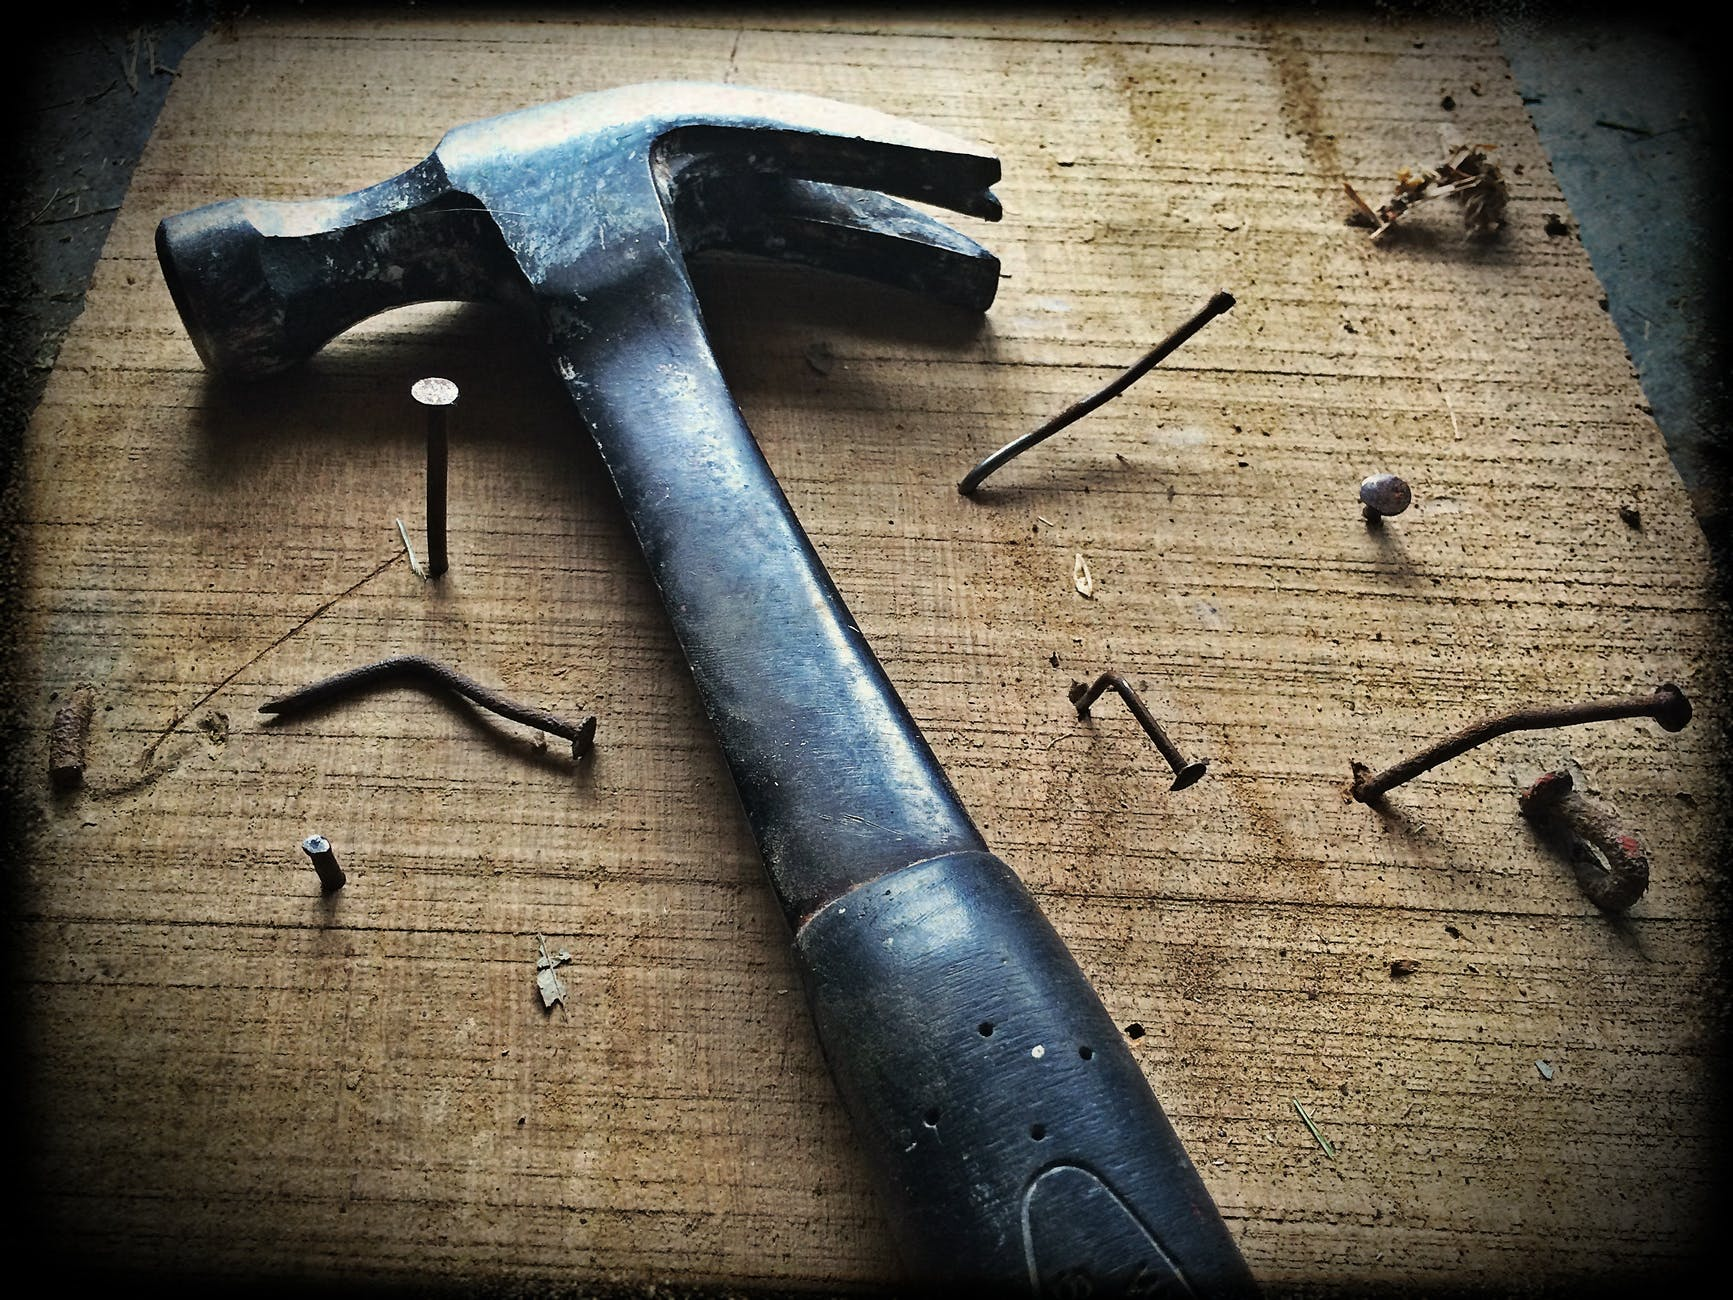 black claw hammer on brown wooden plank